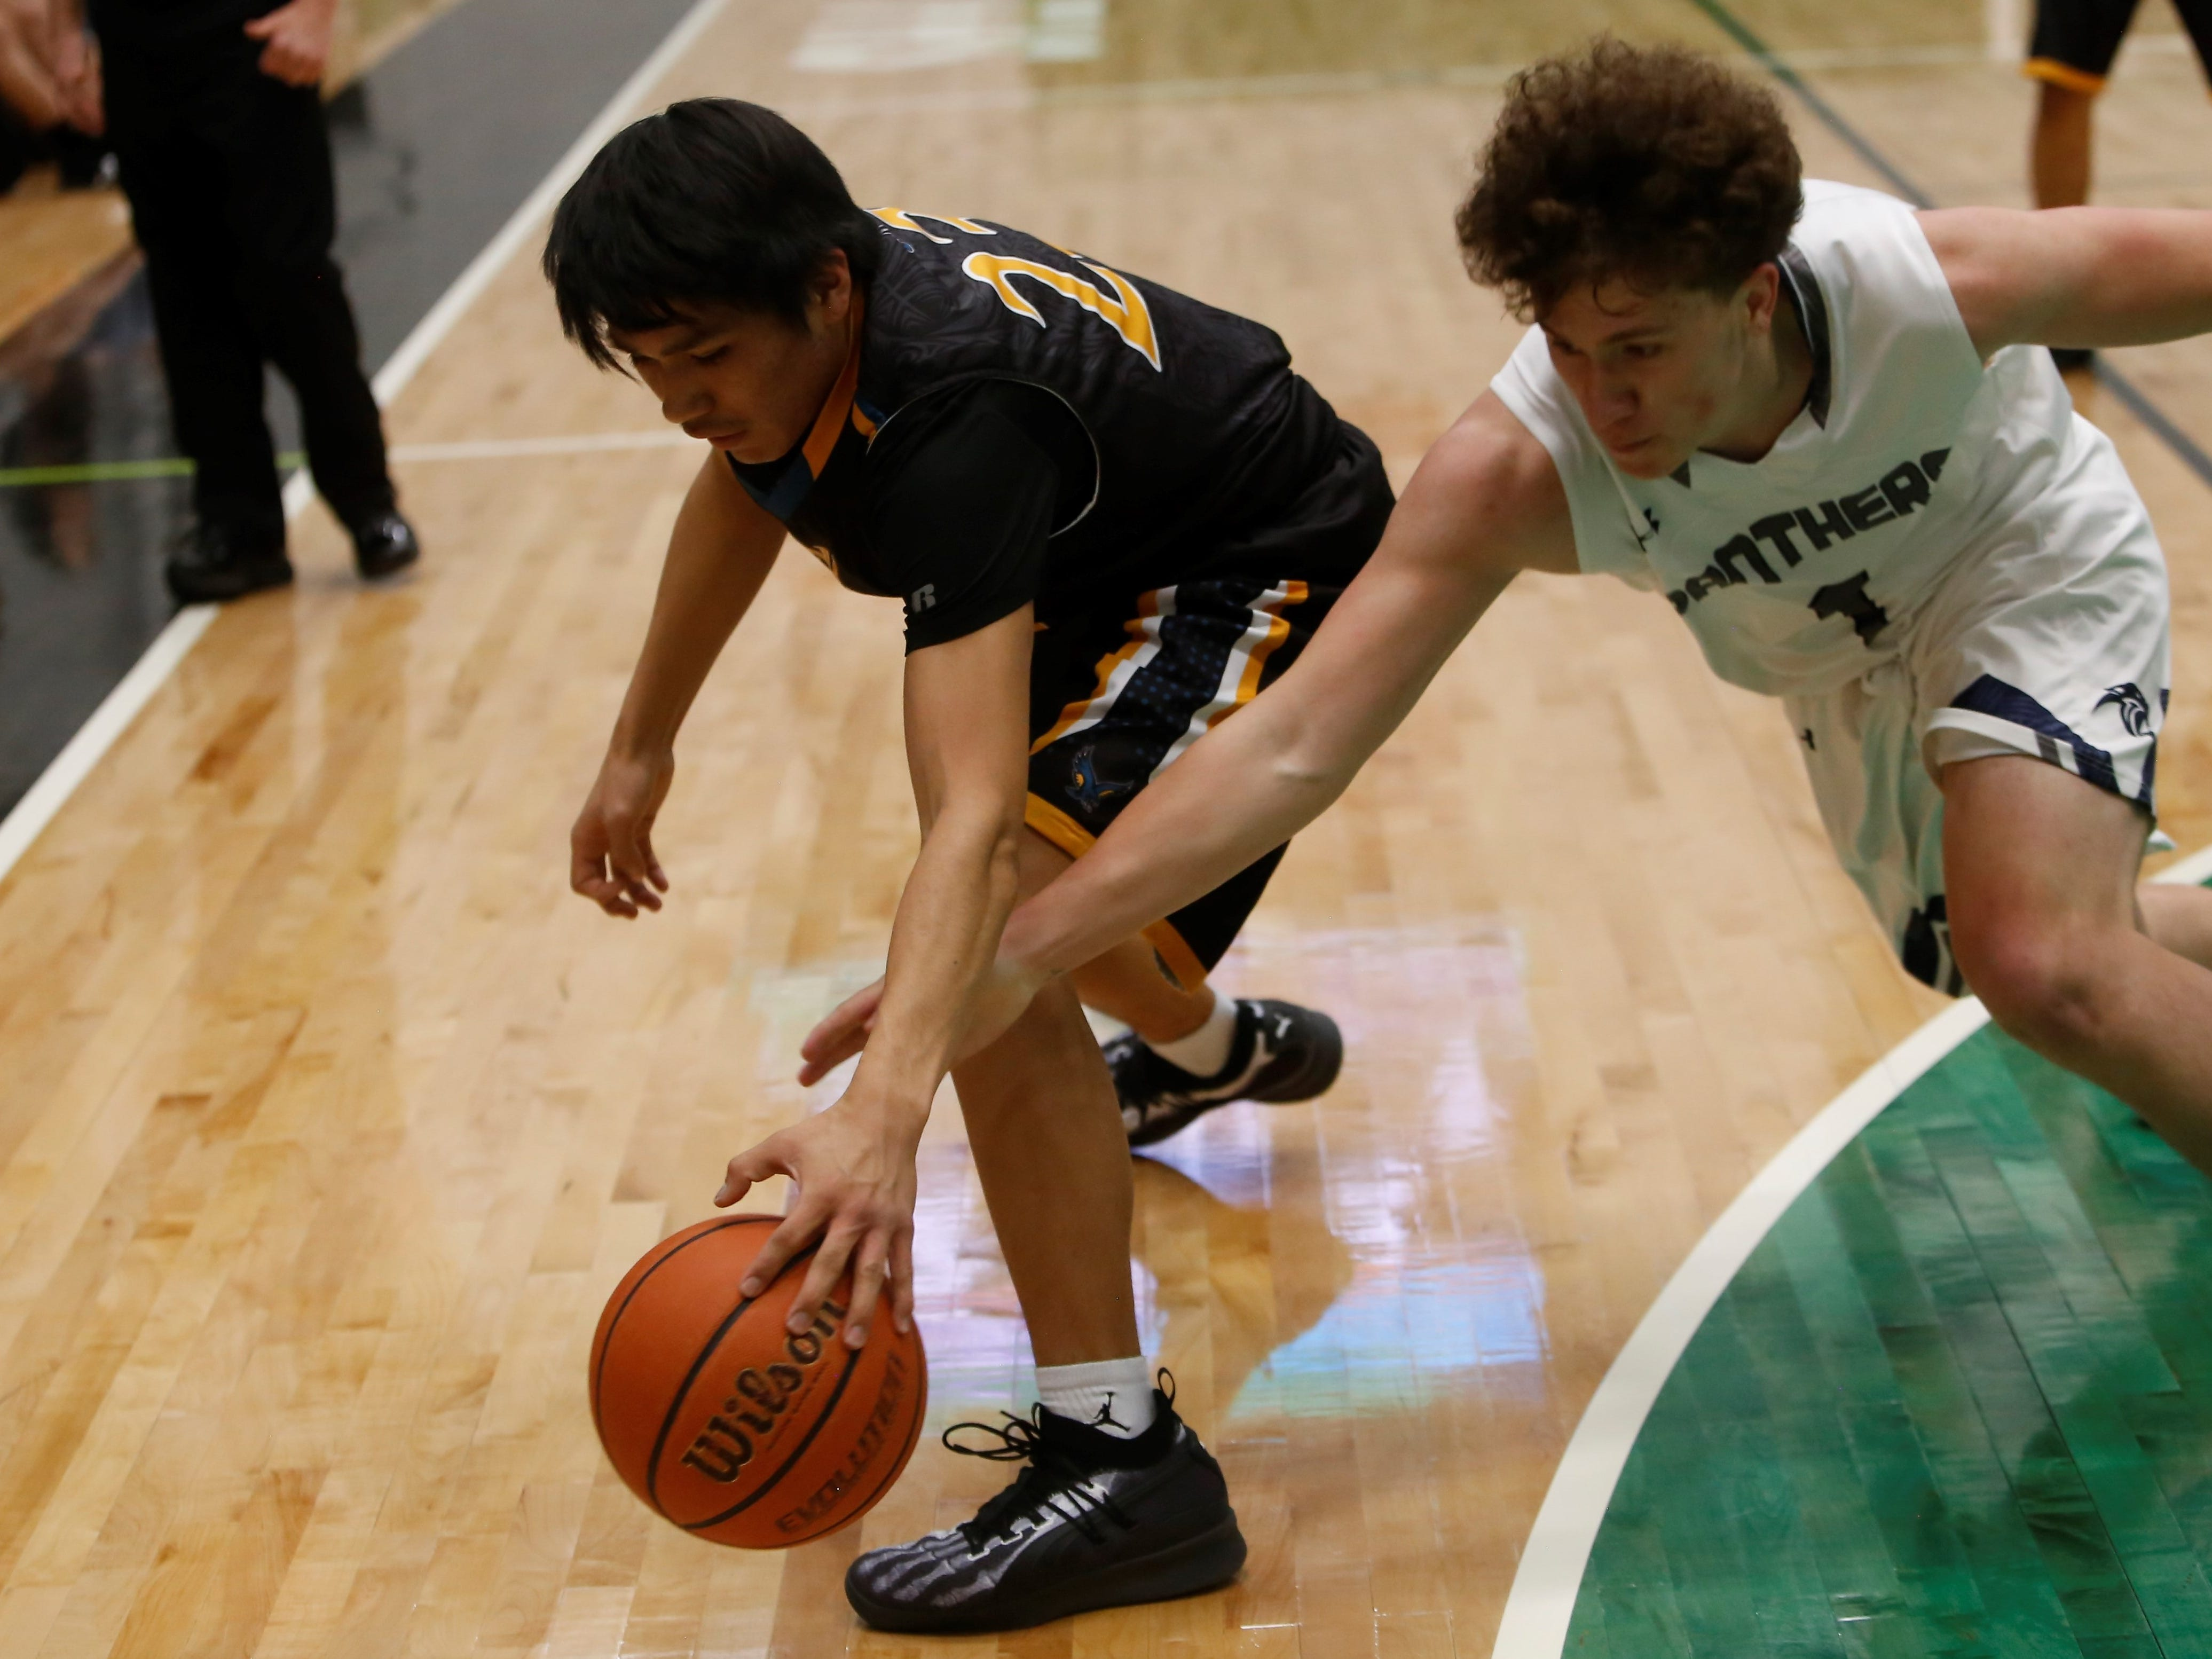 Navajo Prep's Trejan Clichee tries to keep control of the ball near the baseline against Piedra Vista's Jalen Woods during the Marv Sanders Invitational quarterfinals Thursday at Scorpion Arena in Farmington.